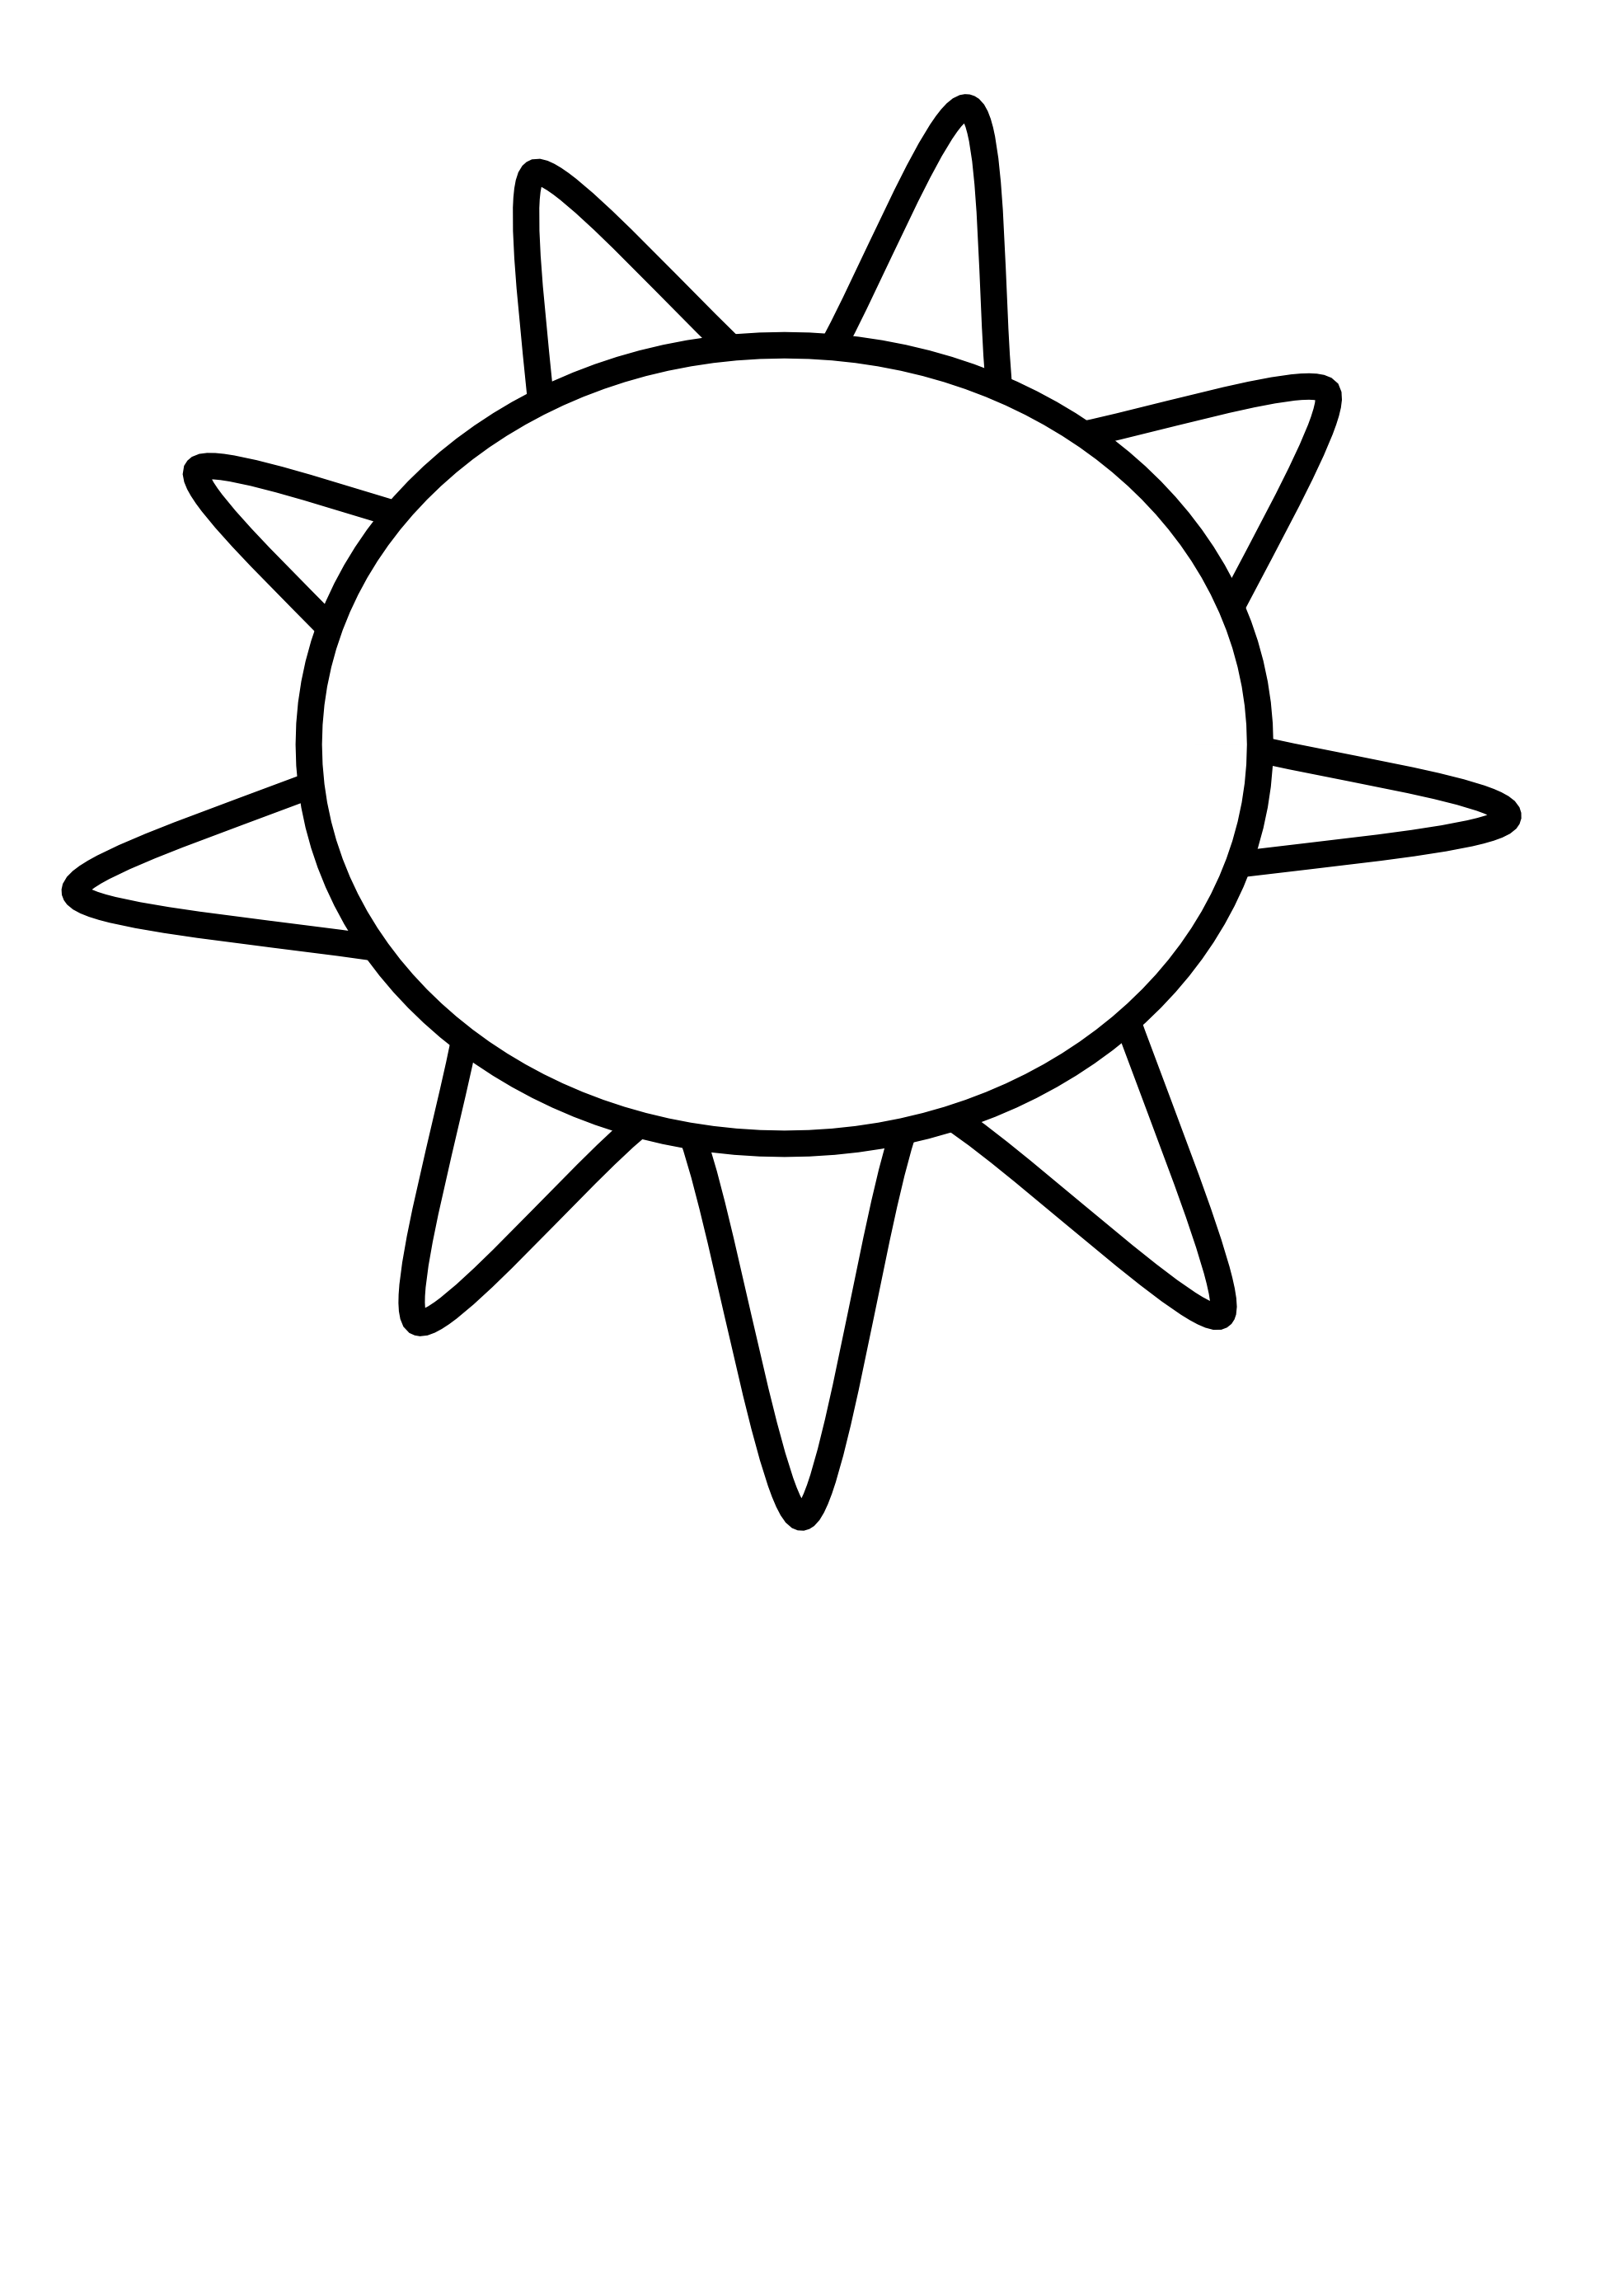 Coloring sun clipart black and white